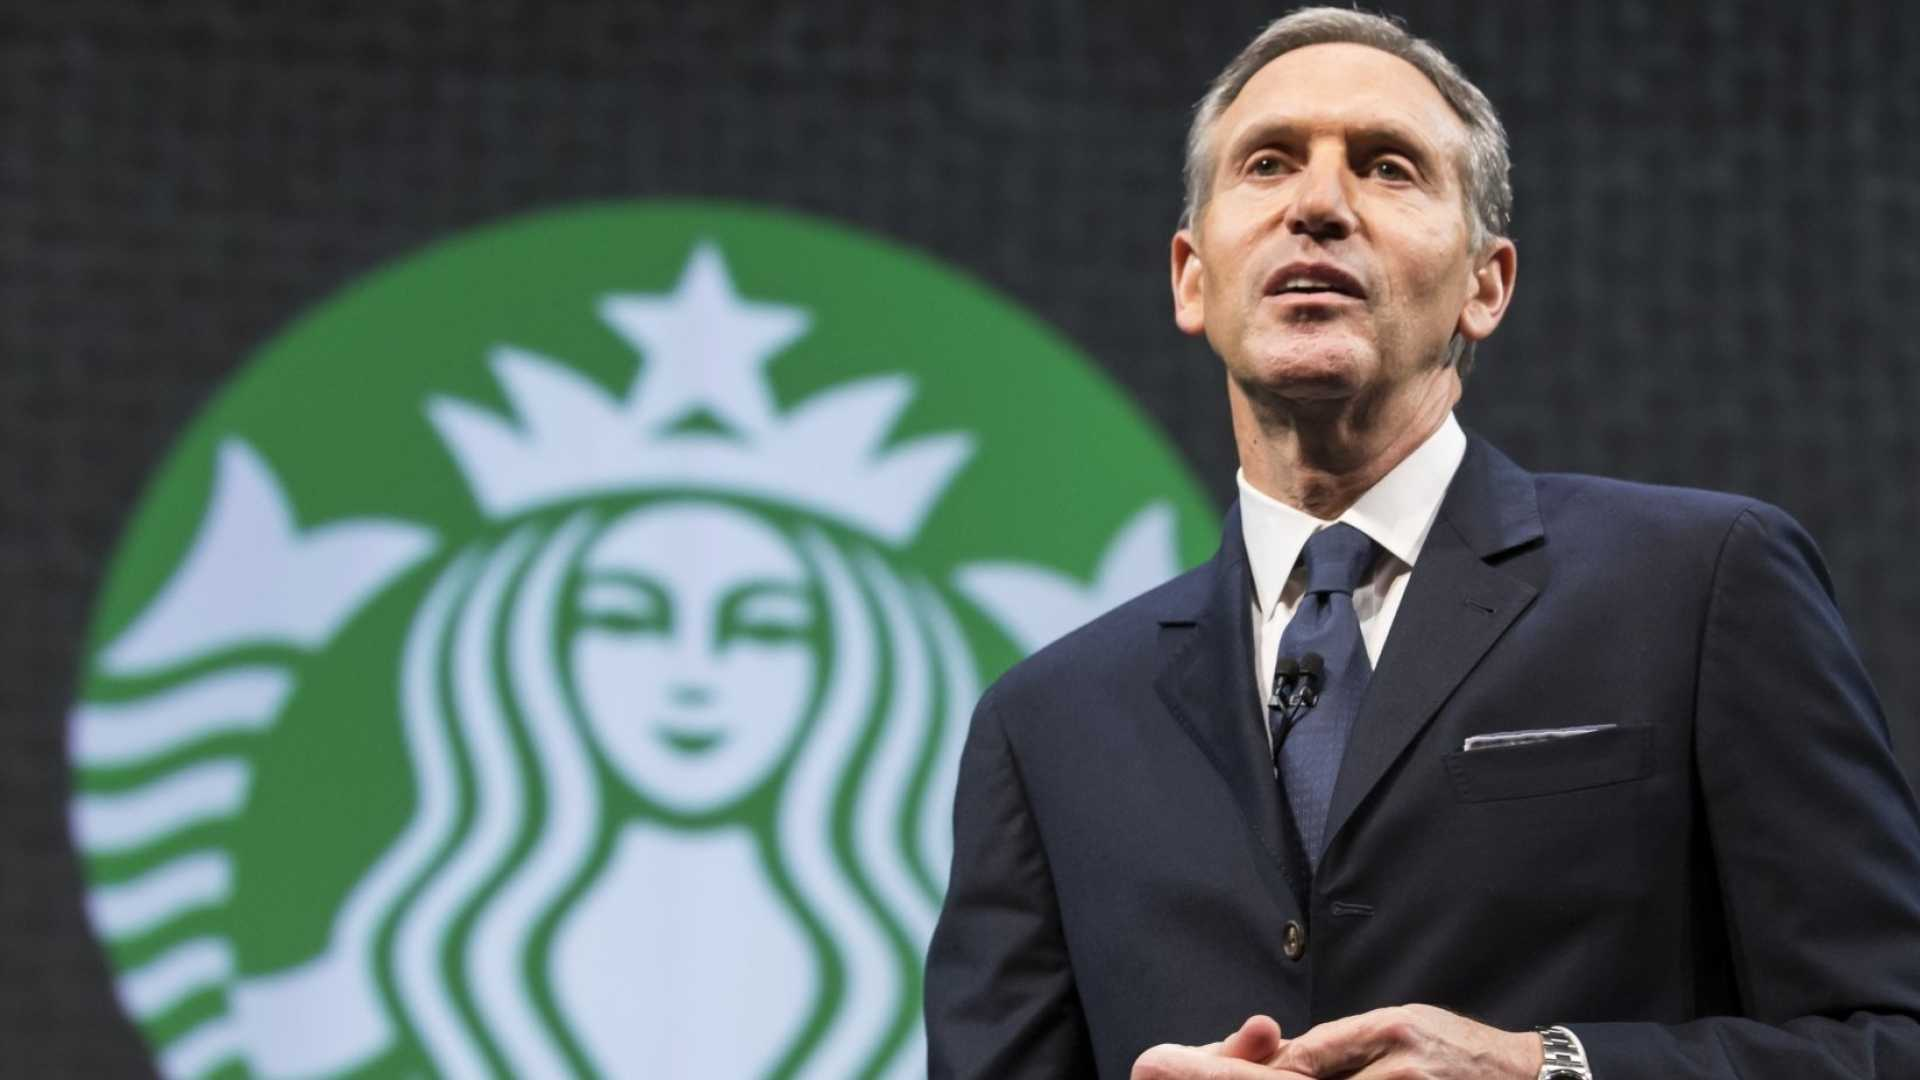 How Starbucks Founder Howard Schultz Went From Rags to Riches